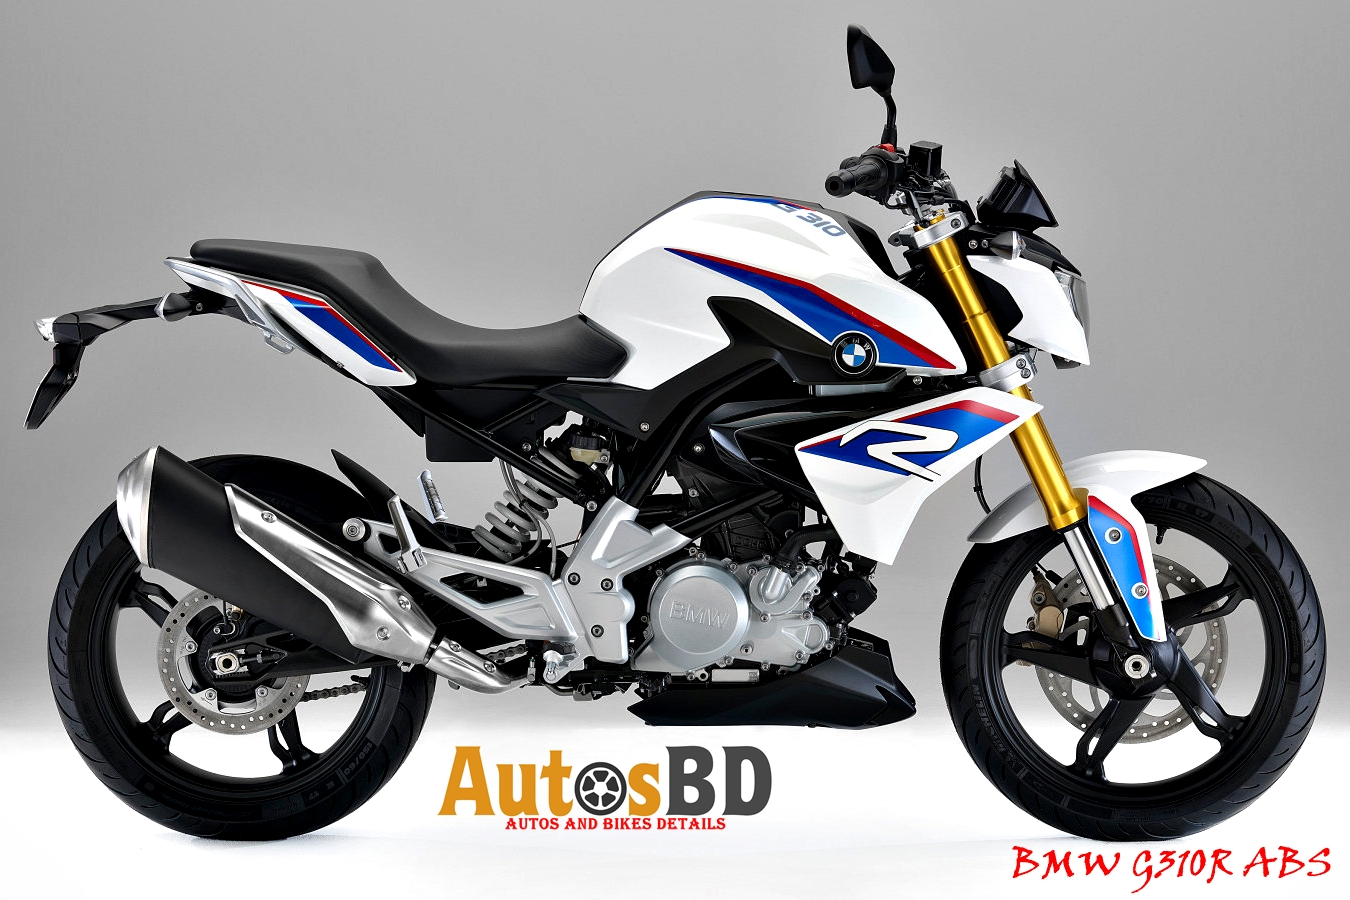 BMW G310R ABS Specification